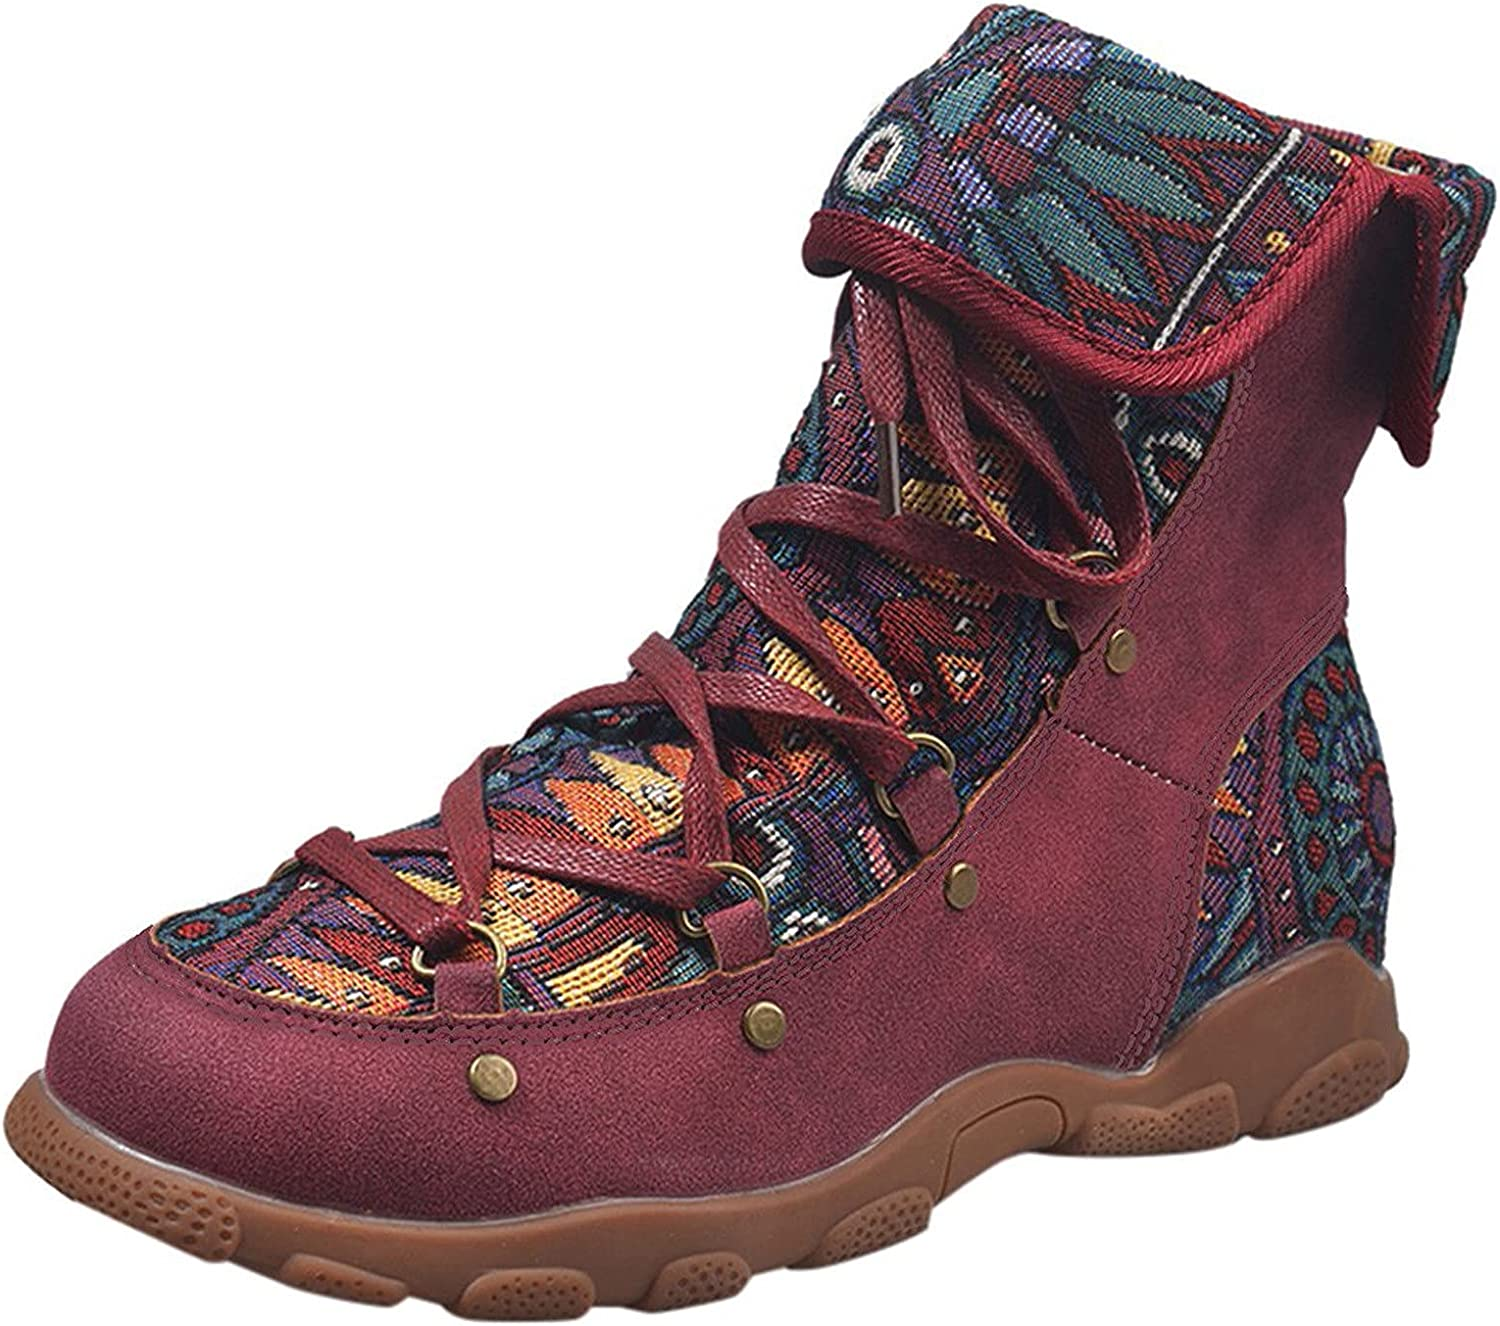 USYFAKGH Women's Fashion Printed Bohemian Lace-up Folk Style Flat Casual Ankle Boots